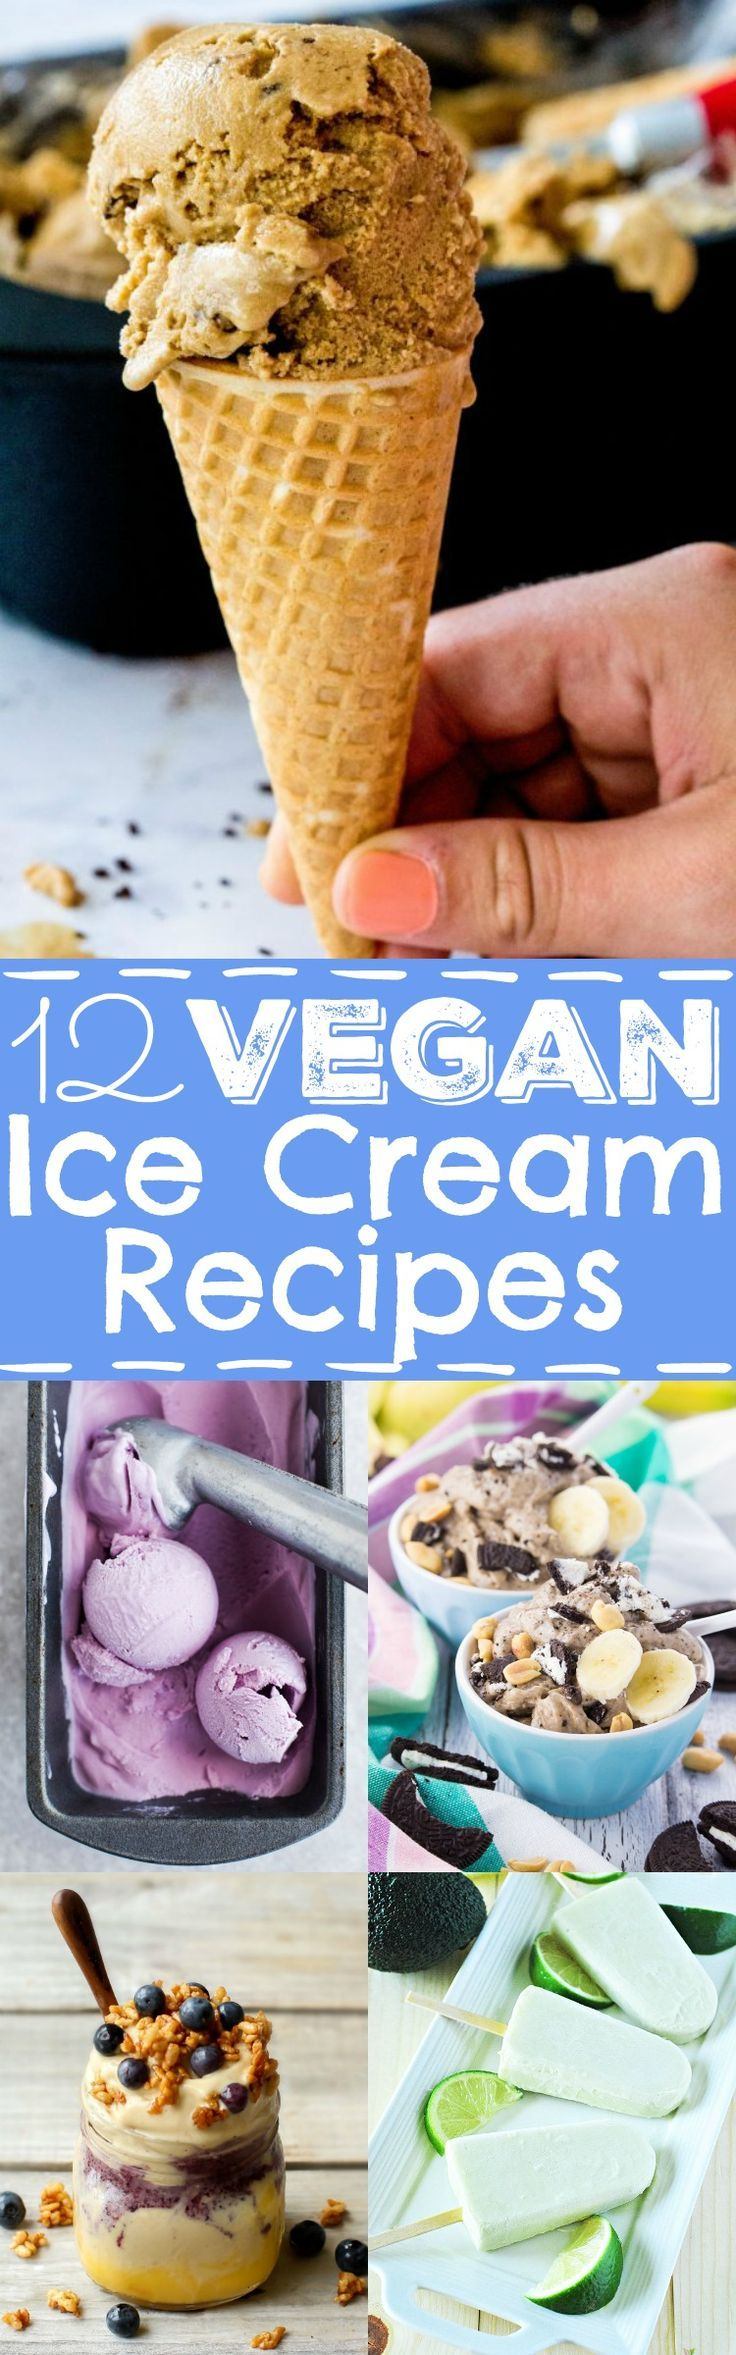 12 vegan popsicles and ice creams you really need to try this summer! They're all dairy-free, creamy, super yummy, and some are even incredibly healthy! #vegan #icecream #popsicles #dairyfree #summer #recipes #nicecream